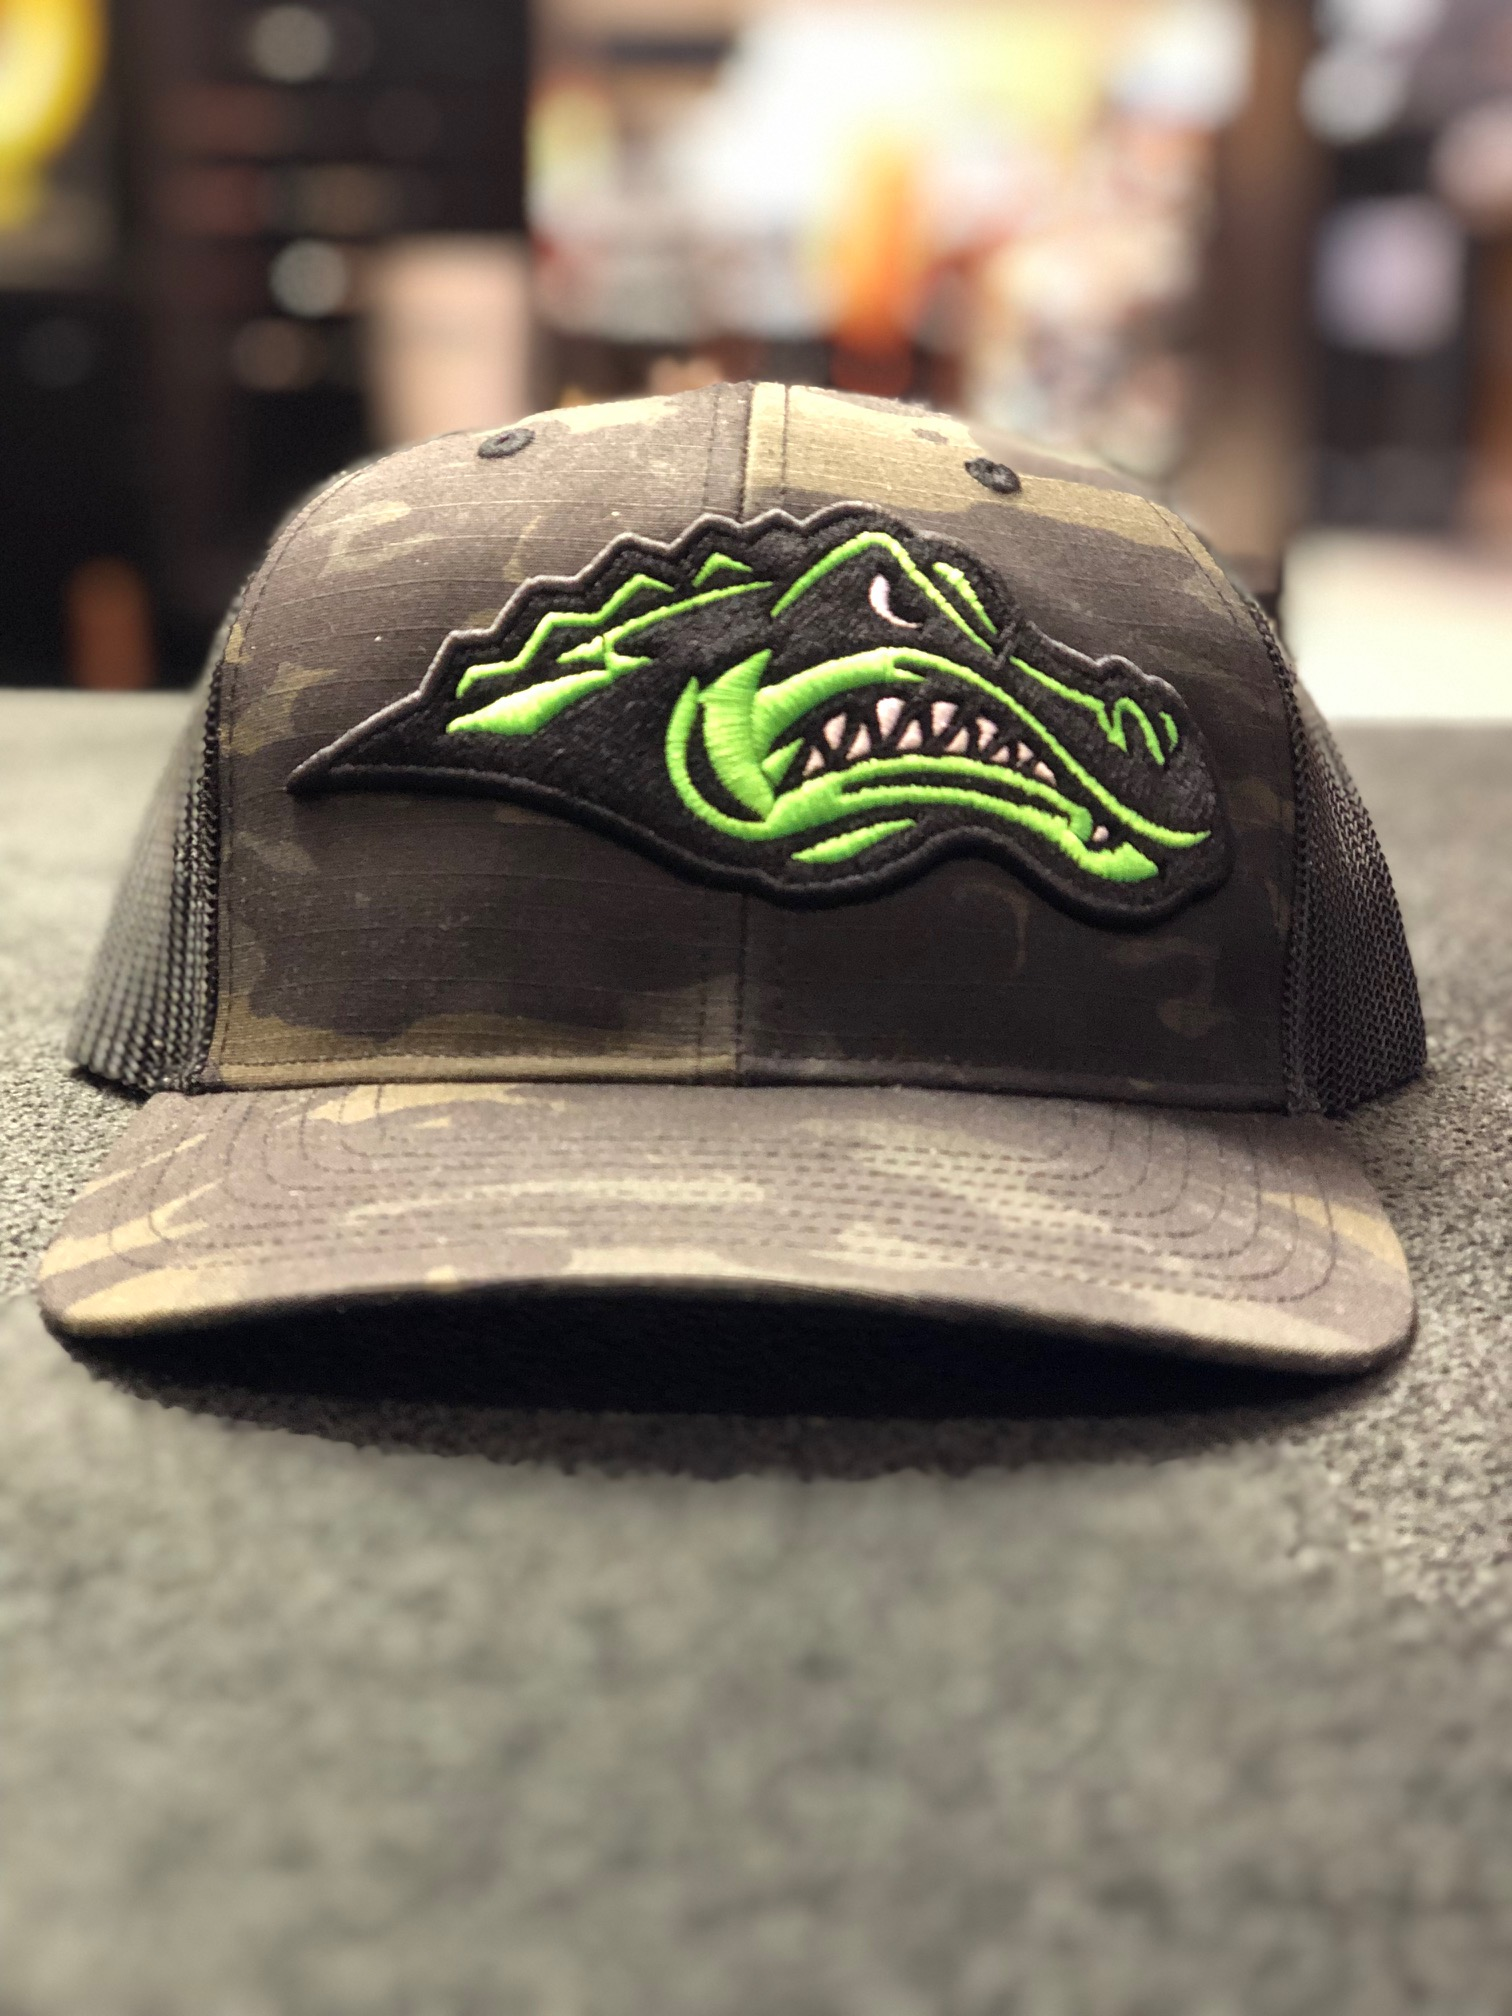 logounltd_laser_etching_embroidery_screen_printing_apparel_uniform_custom_tshirts_kirkland_bellevue_seattle_redmond_woodinville_branded_merchandise_promotional_products_logo_unltd_green_river_college_hat (2).jpg